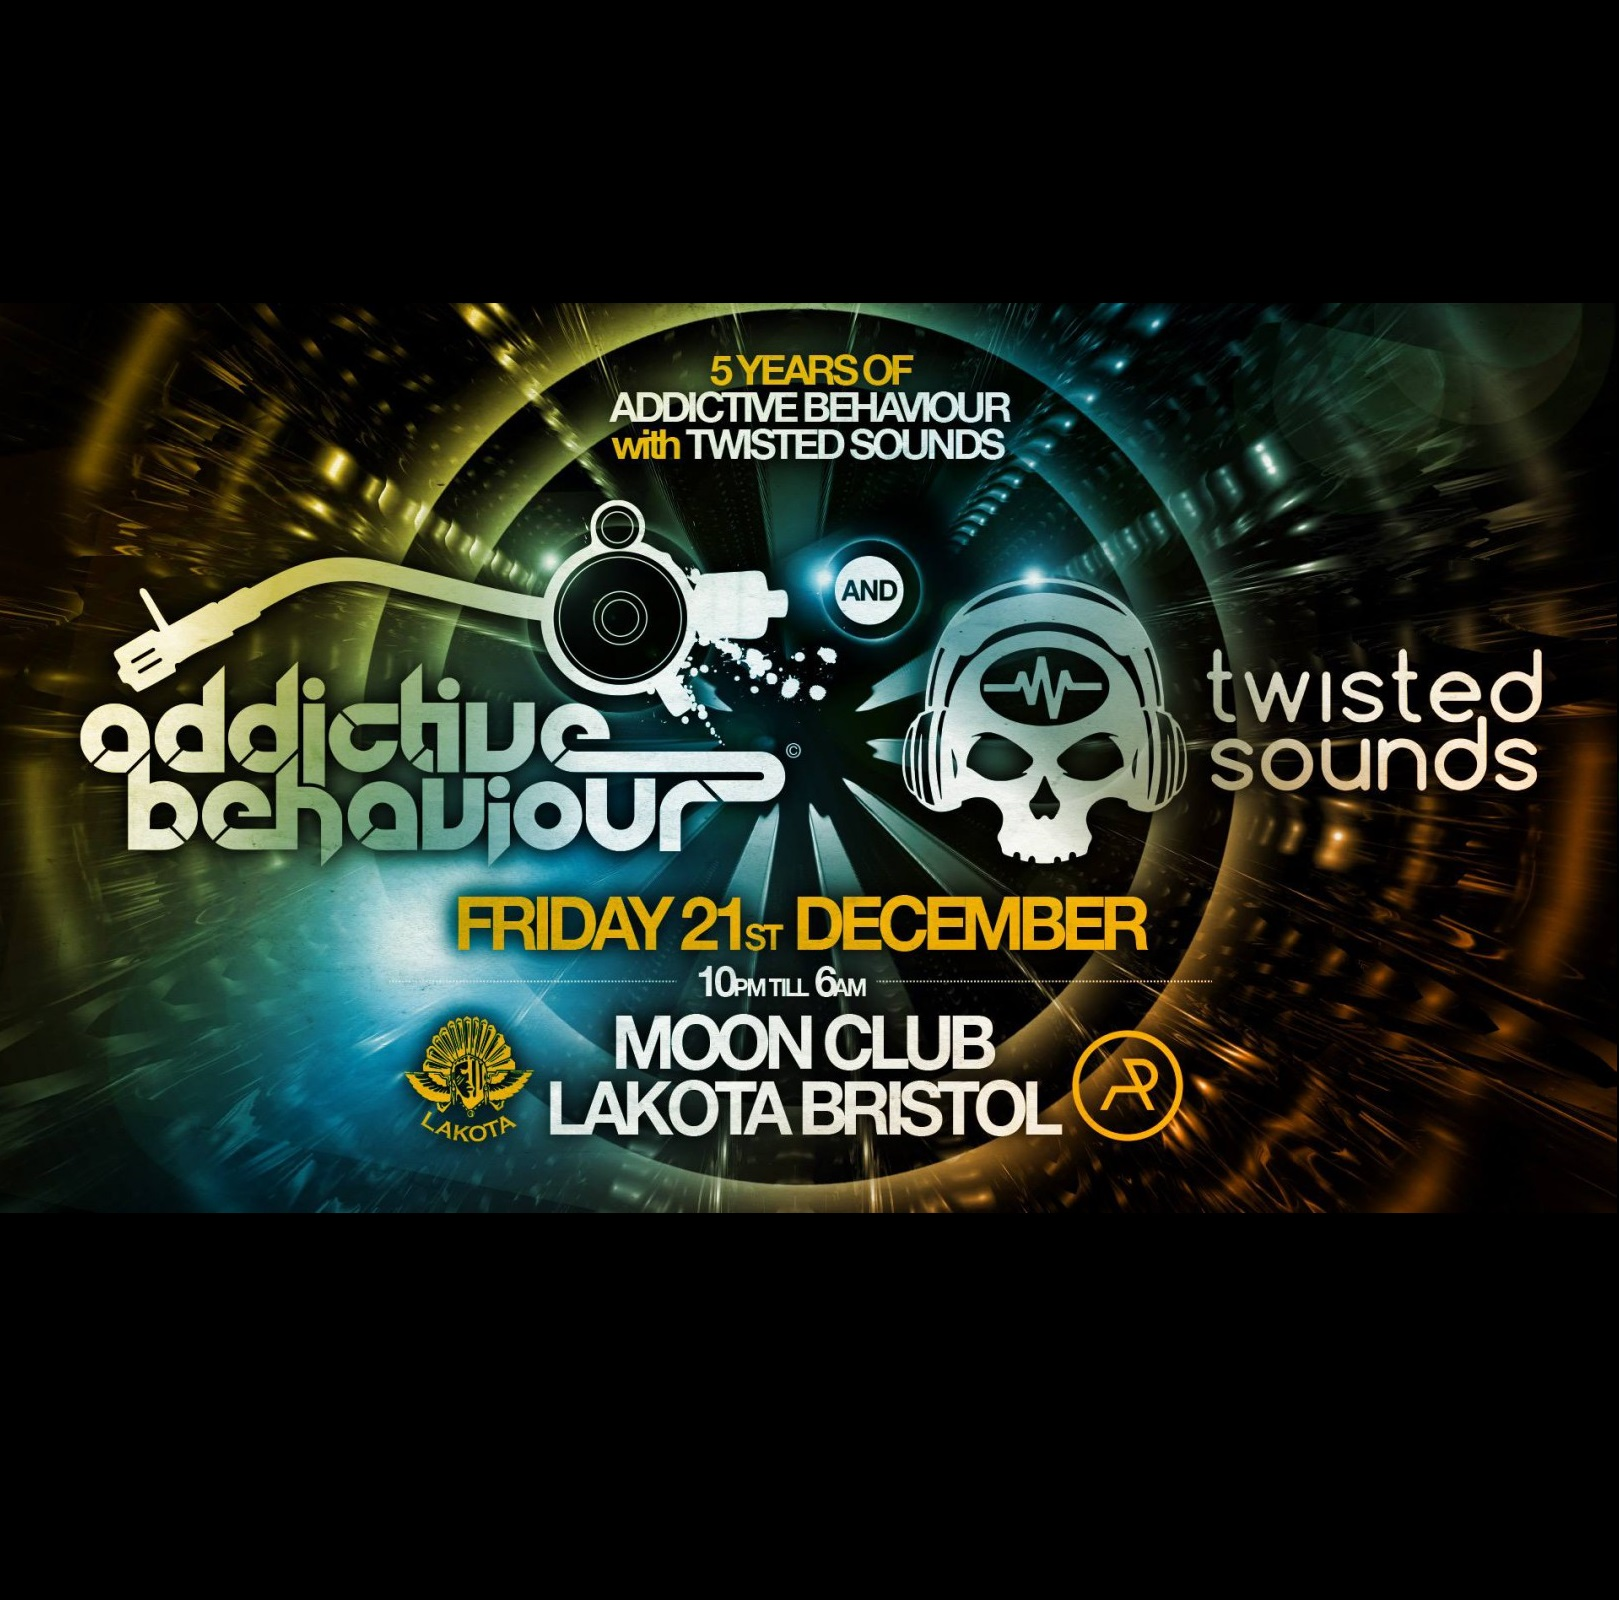 5 Years of Addictive Behaviour with Twisted Sounds